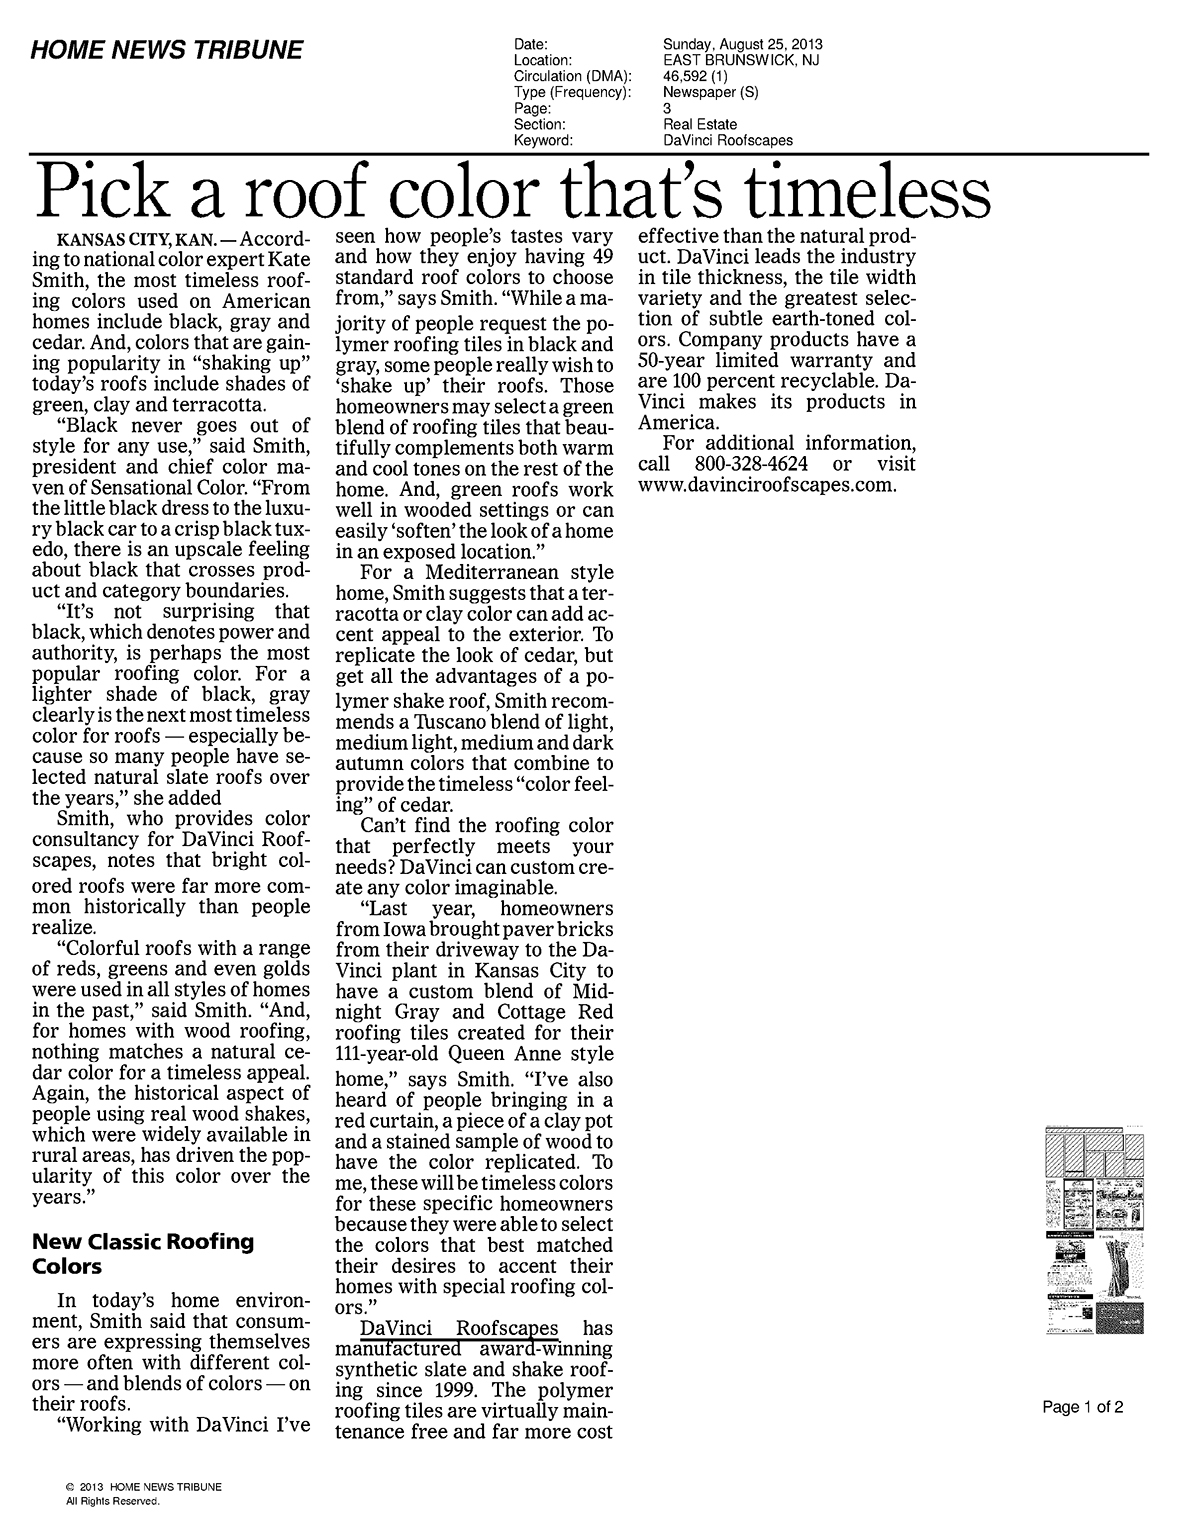 Home News Tribune: Pick a roof color that is timeless